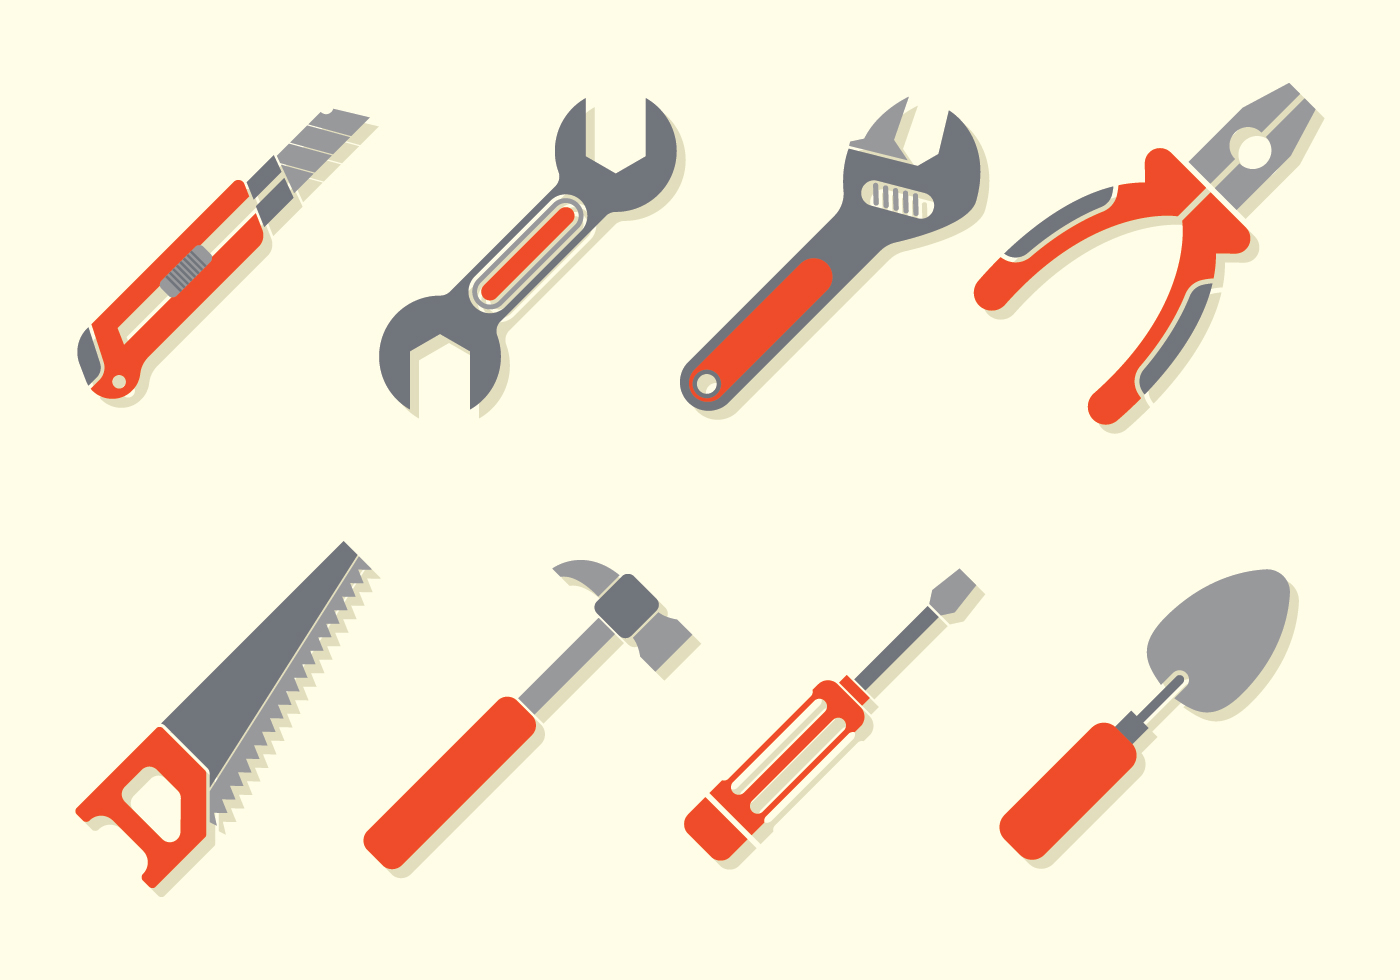 Bricolage tools icons download free vector art stock - Clipart bricolage ...